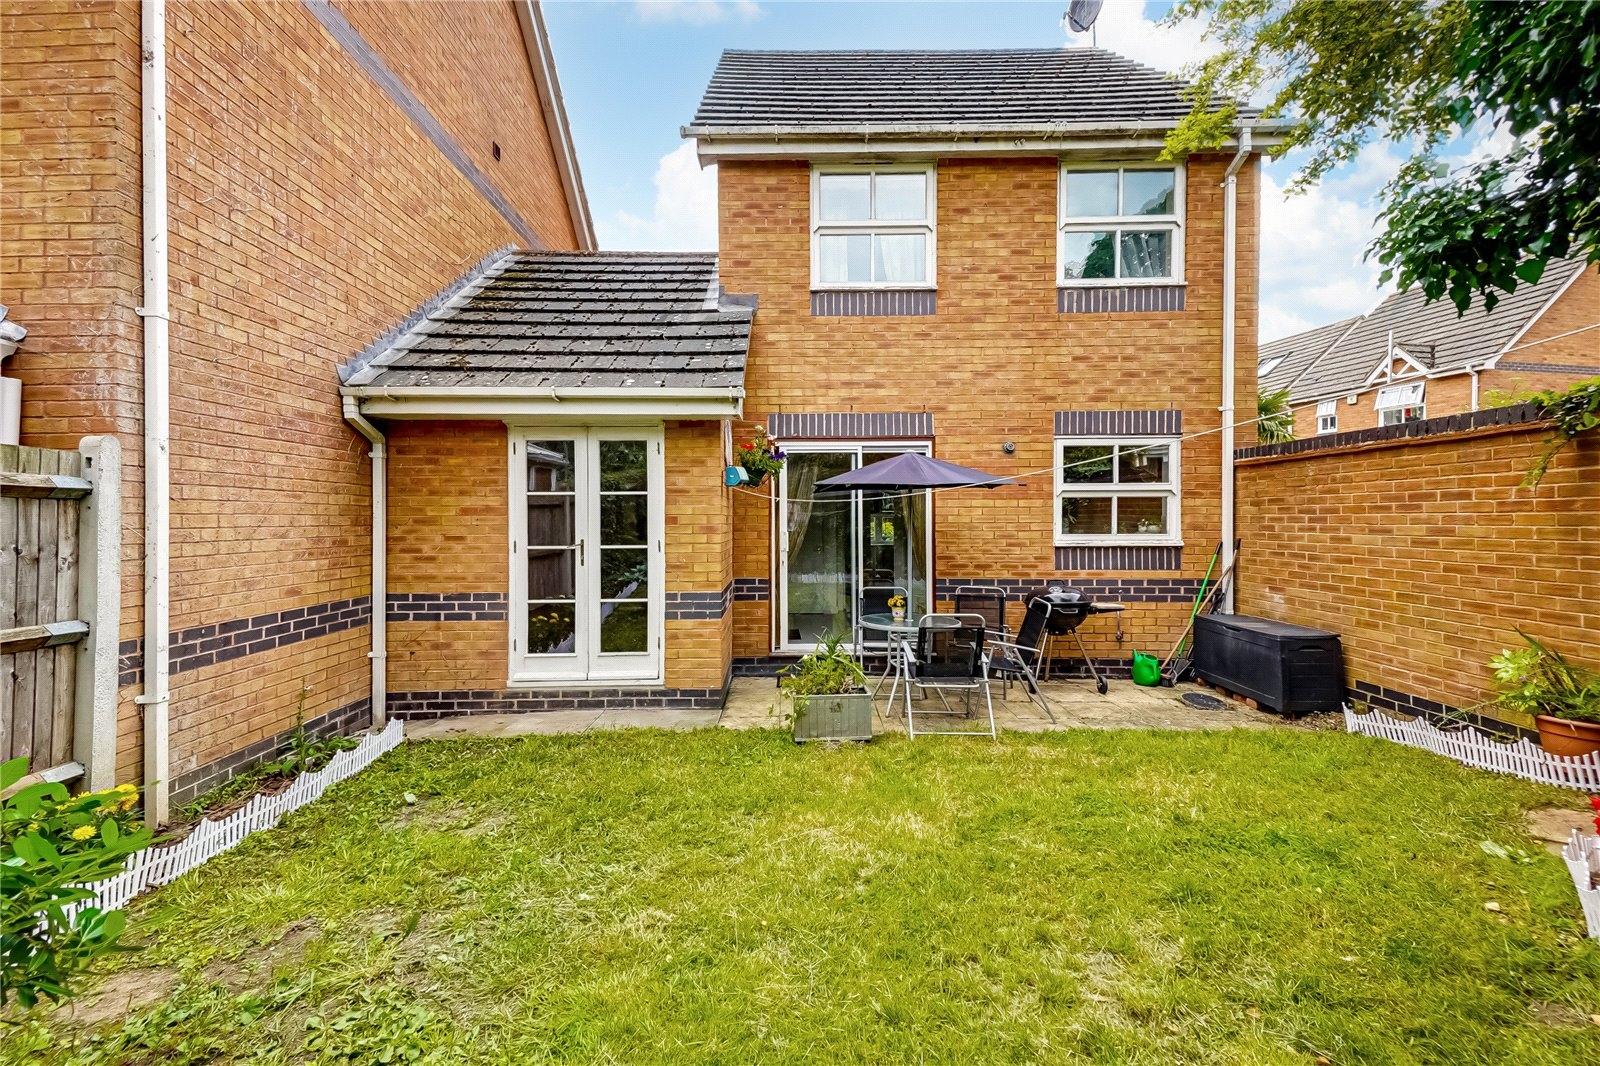 3 bed house for sale in The Mallows, Maidstone  - Property Image 4